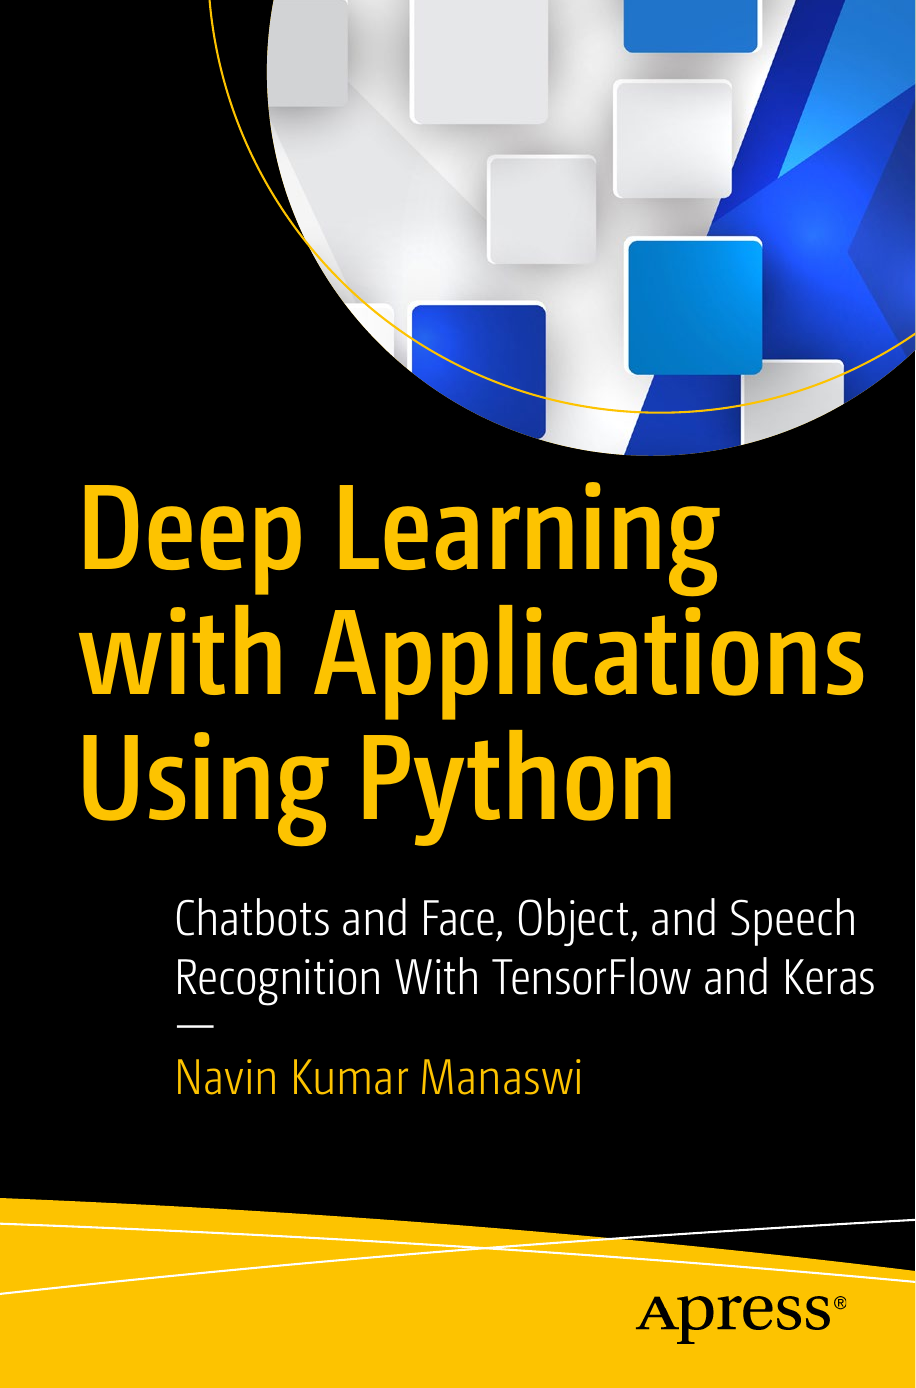 manaswi n k deep learning with applications using python cha